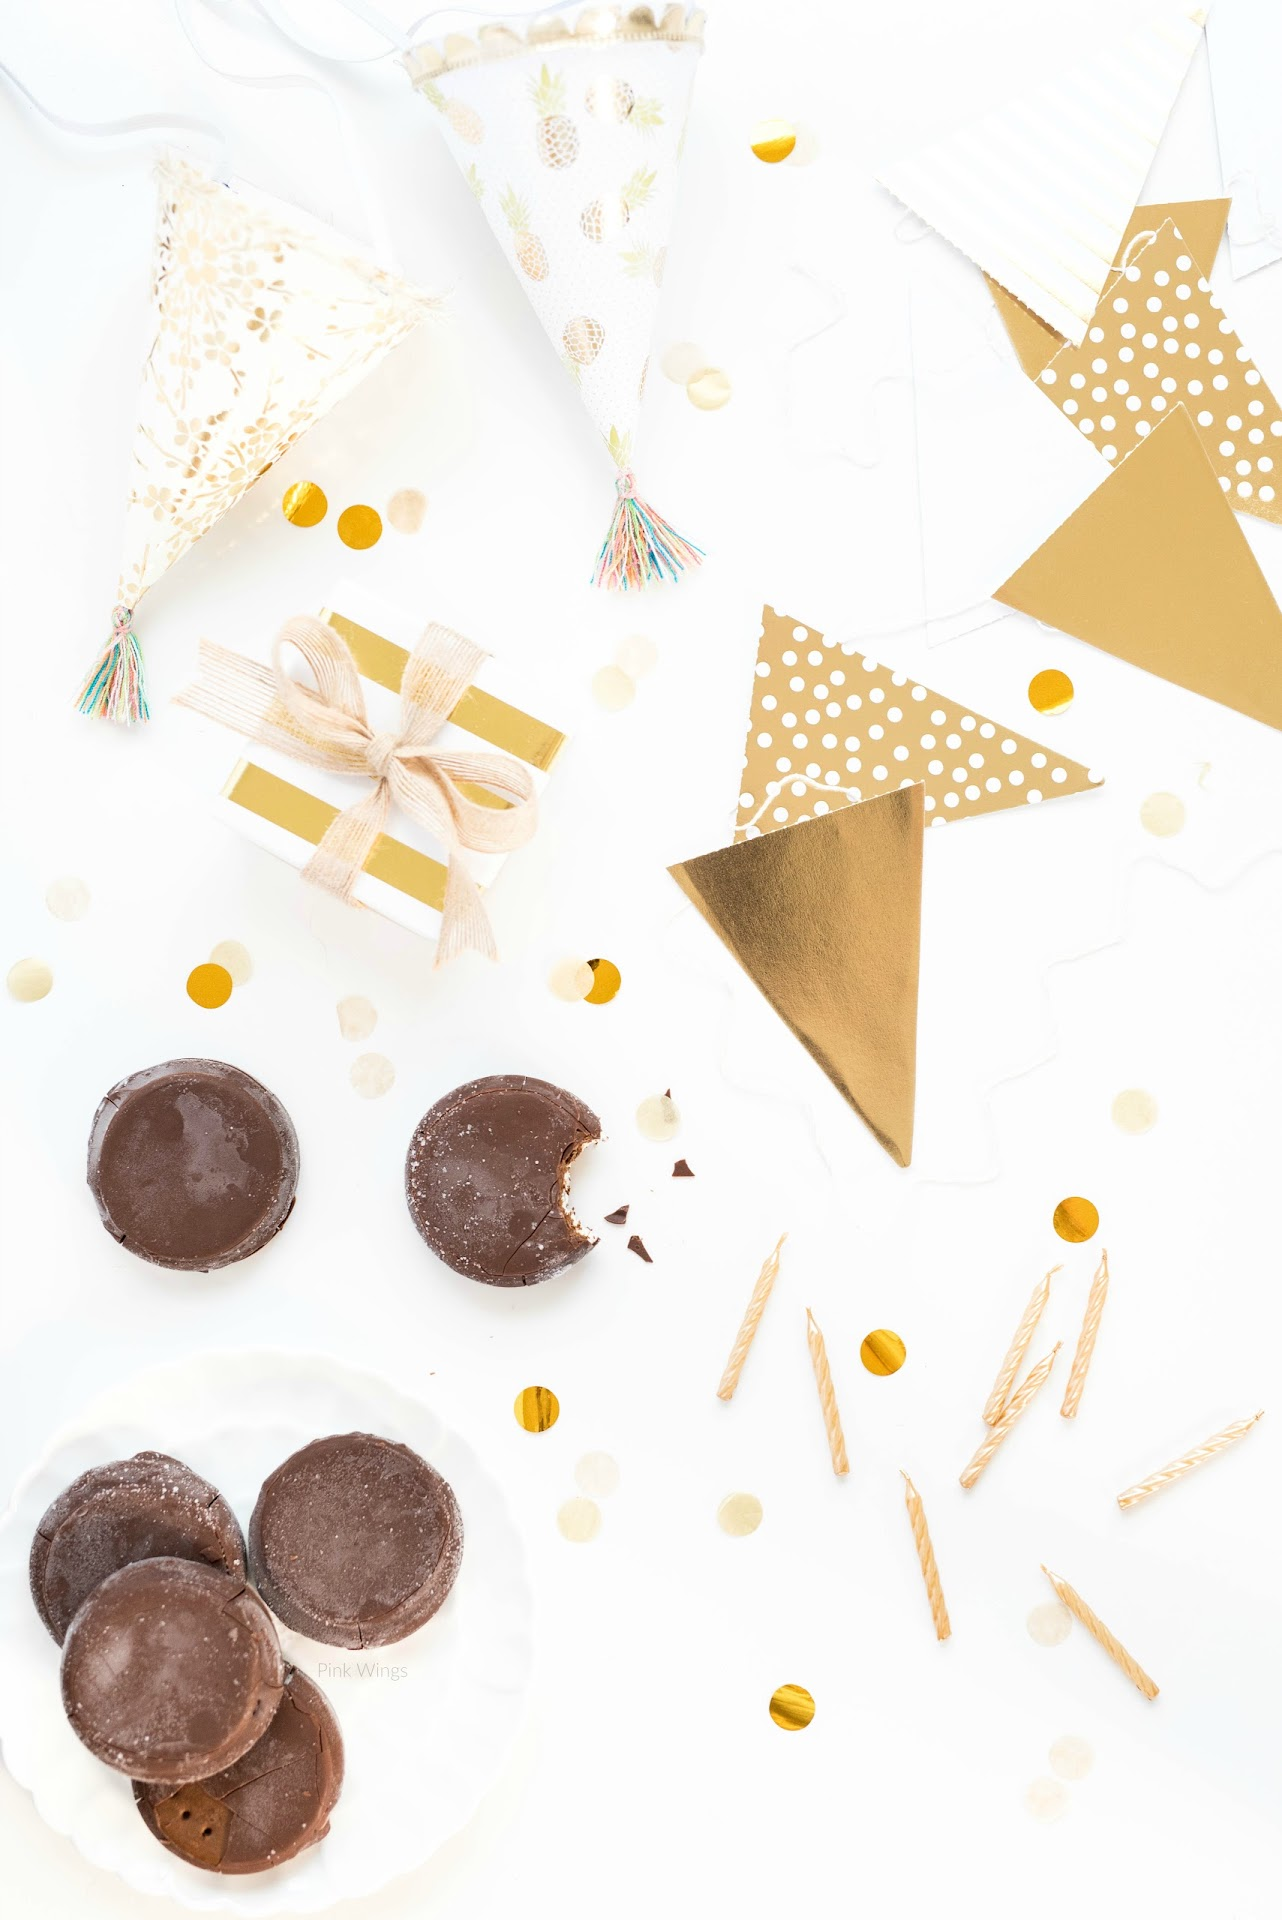 skinny cow chocolatey dipped ice cream sandwiches, review, best ice cream sandwiches, birthday cakes for ice cream lovers, summer birthday ideas, gold birthday party, gold candles, birthday party ideas for adults, husband birthday ideas, gold themed party